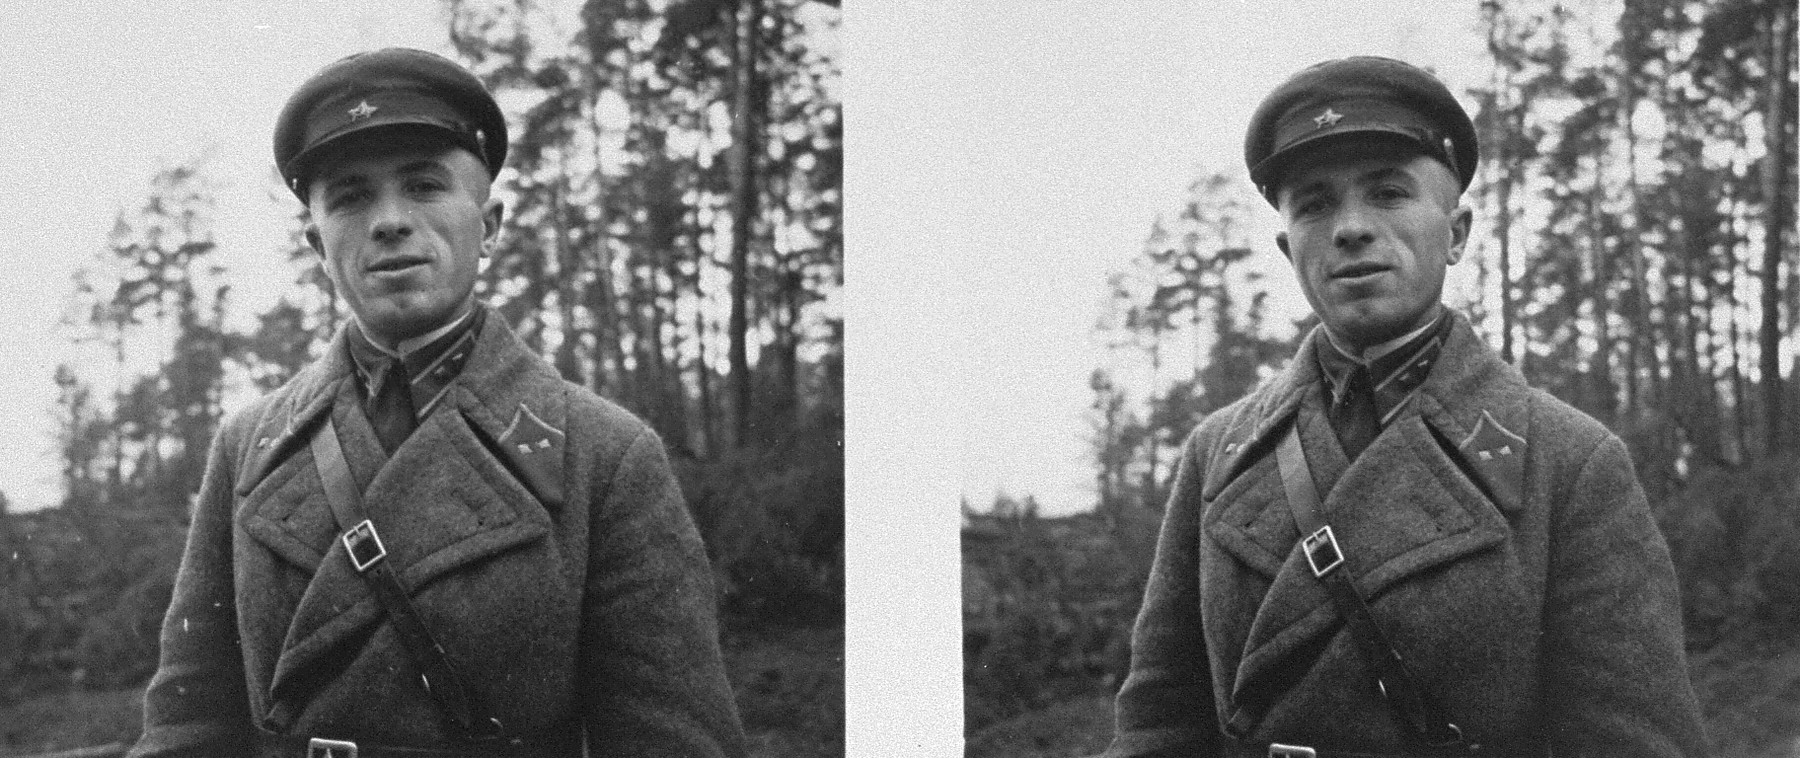 Stereoscopic portrait of a  Soviet military officer near the demarcation line between the Soviet and German-occupied sections of Poland.